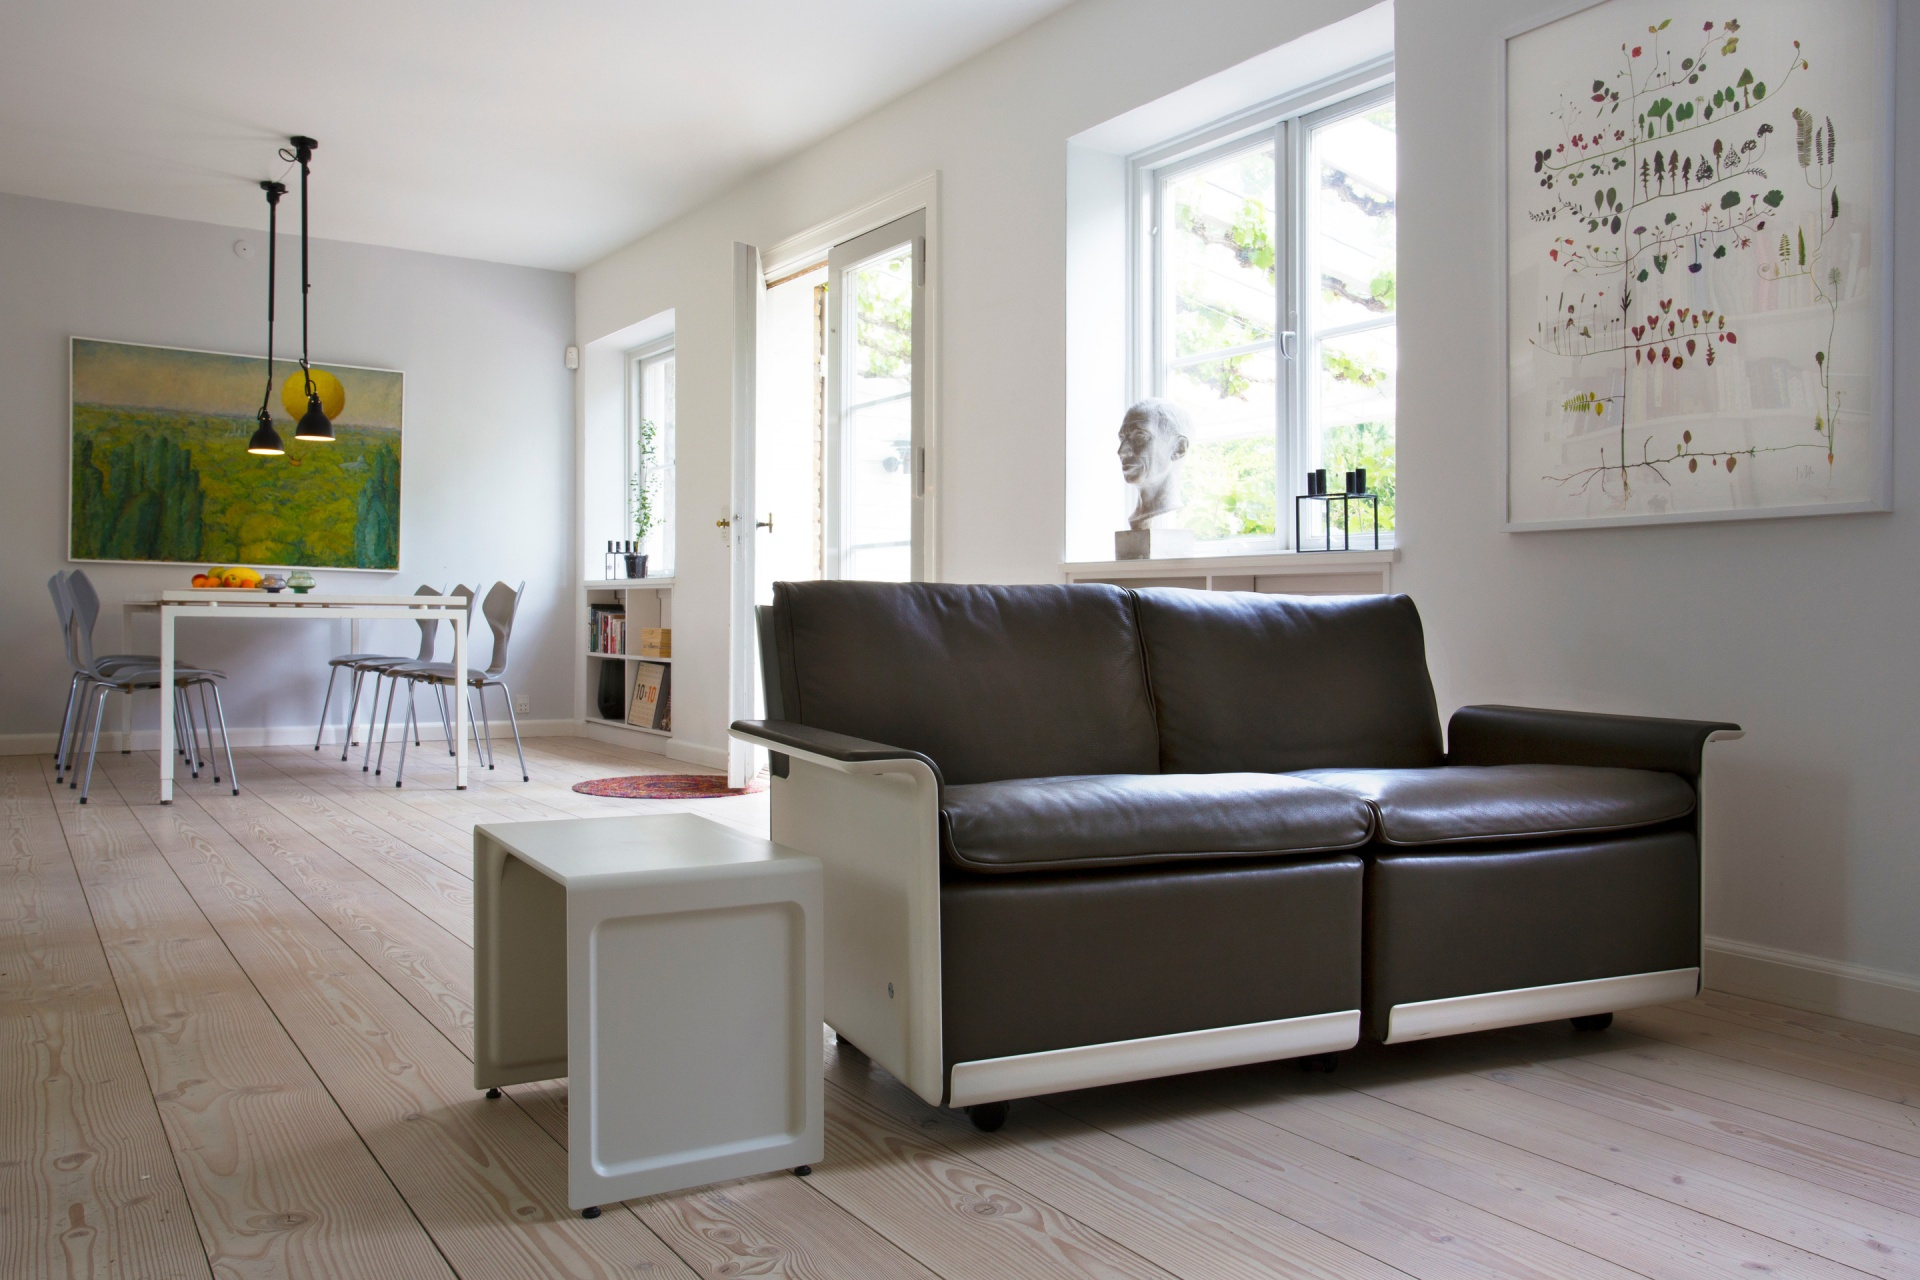 Adjust your room to suit your changing needs. High quality castors on the 620 sofa make repositioning your sofa easy in an open-plan living space